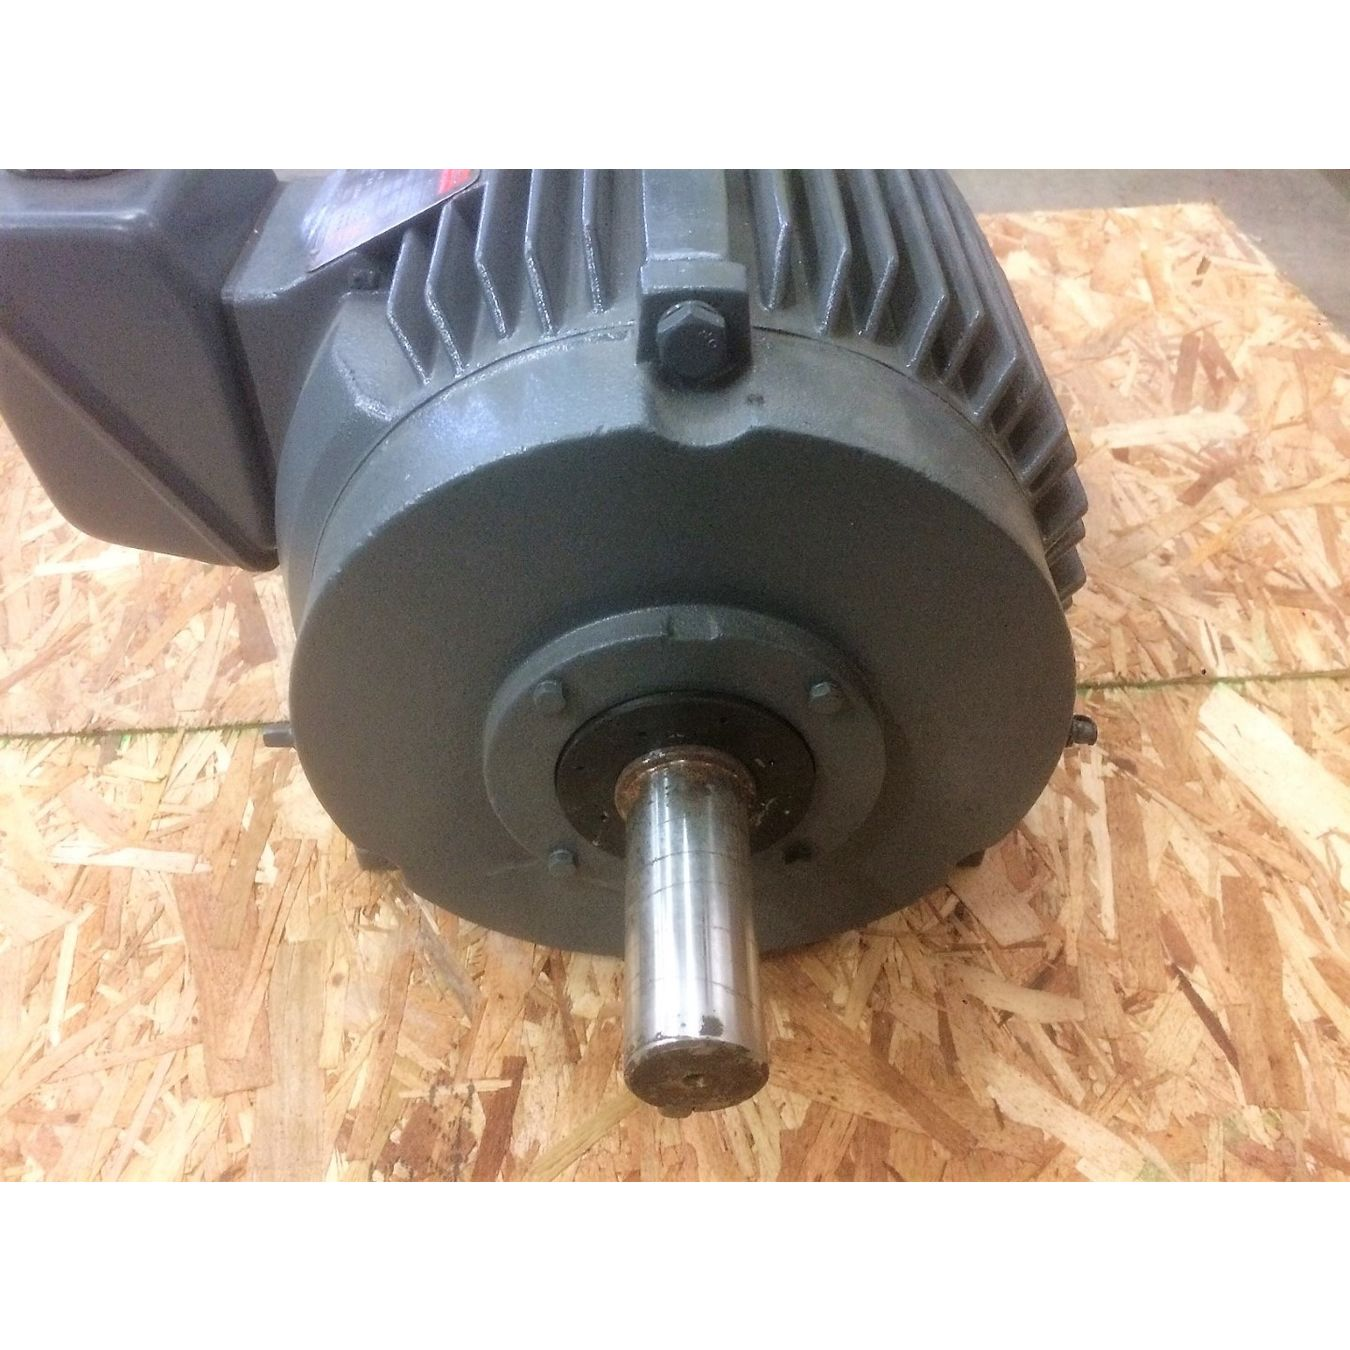 7.5HP Reliance Electric Motor 254T frame [1150 RPM] : Motors & Drives